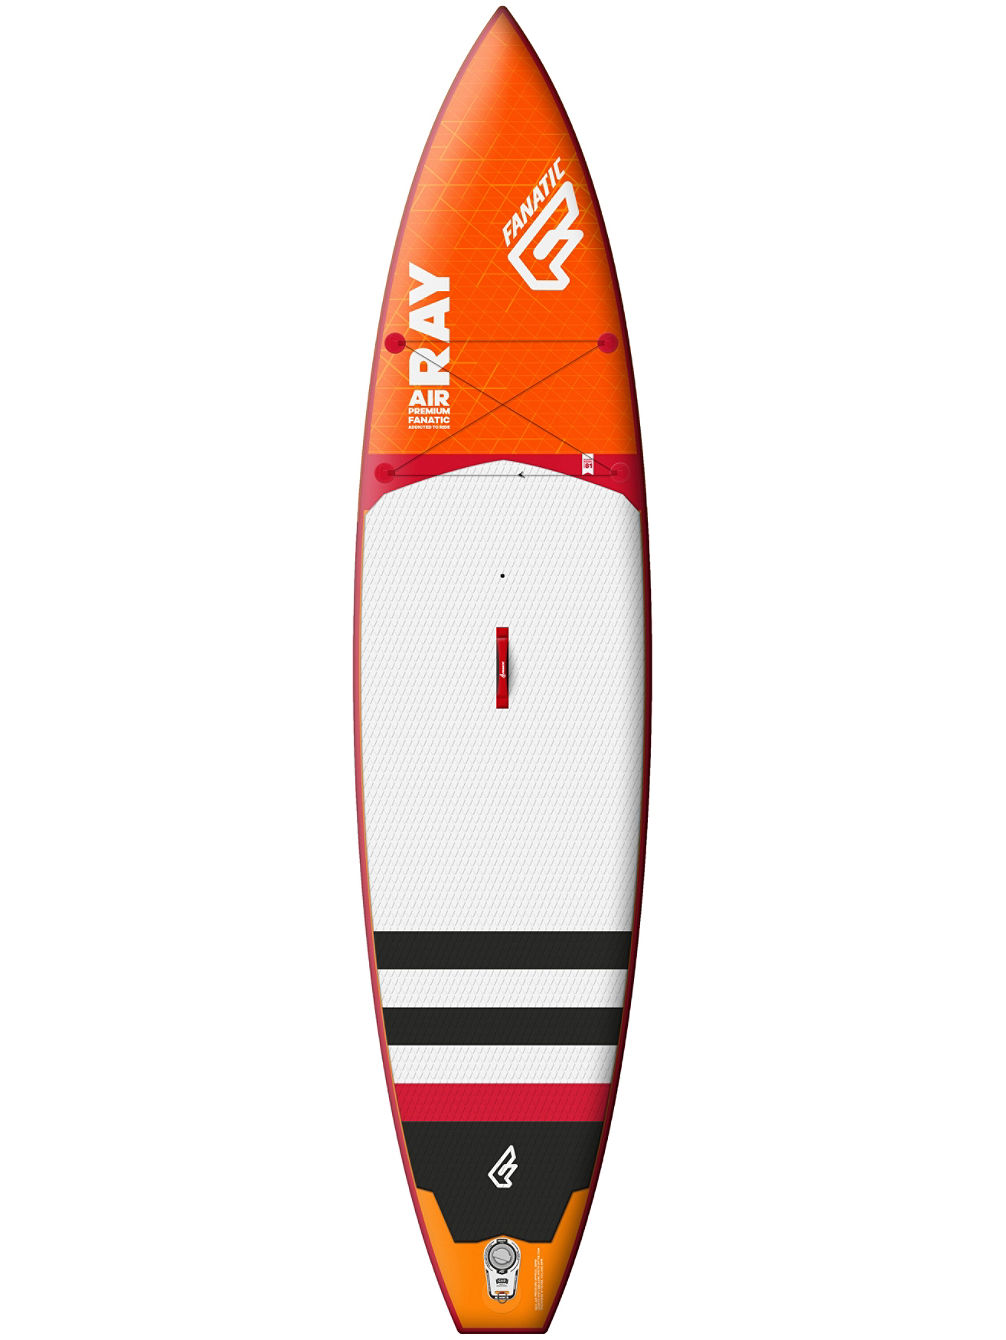 Ray Air Premium 12.6x32 SUP Board